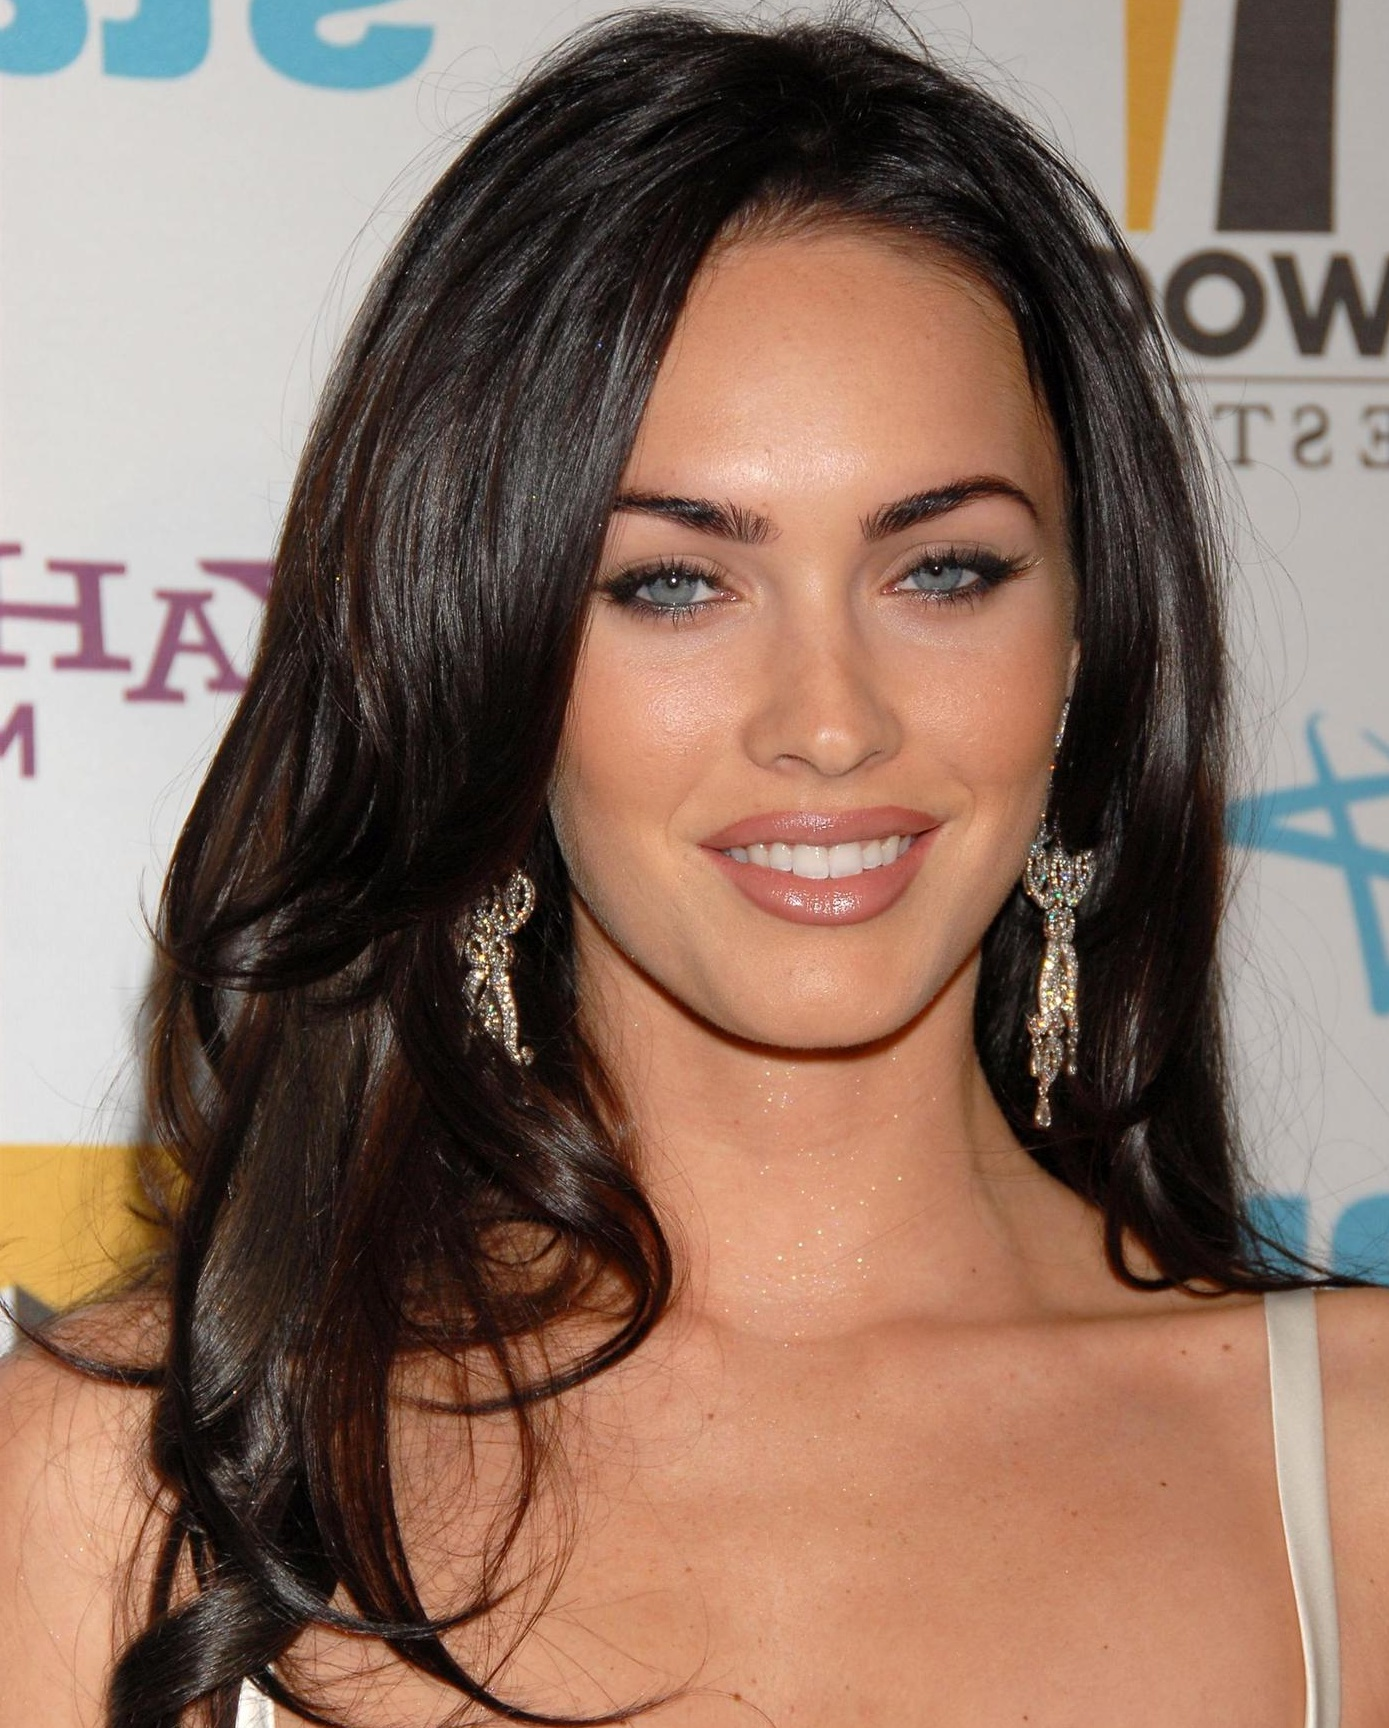 megan fox - Megan Fox Photo (396342) - Fanpop